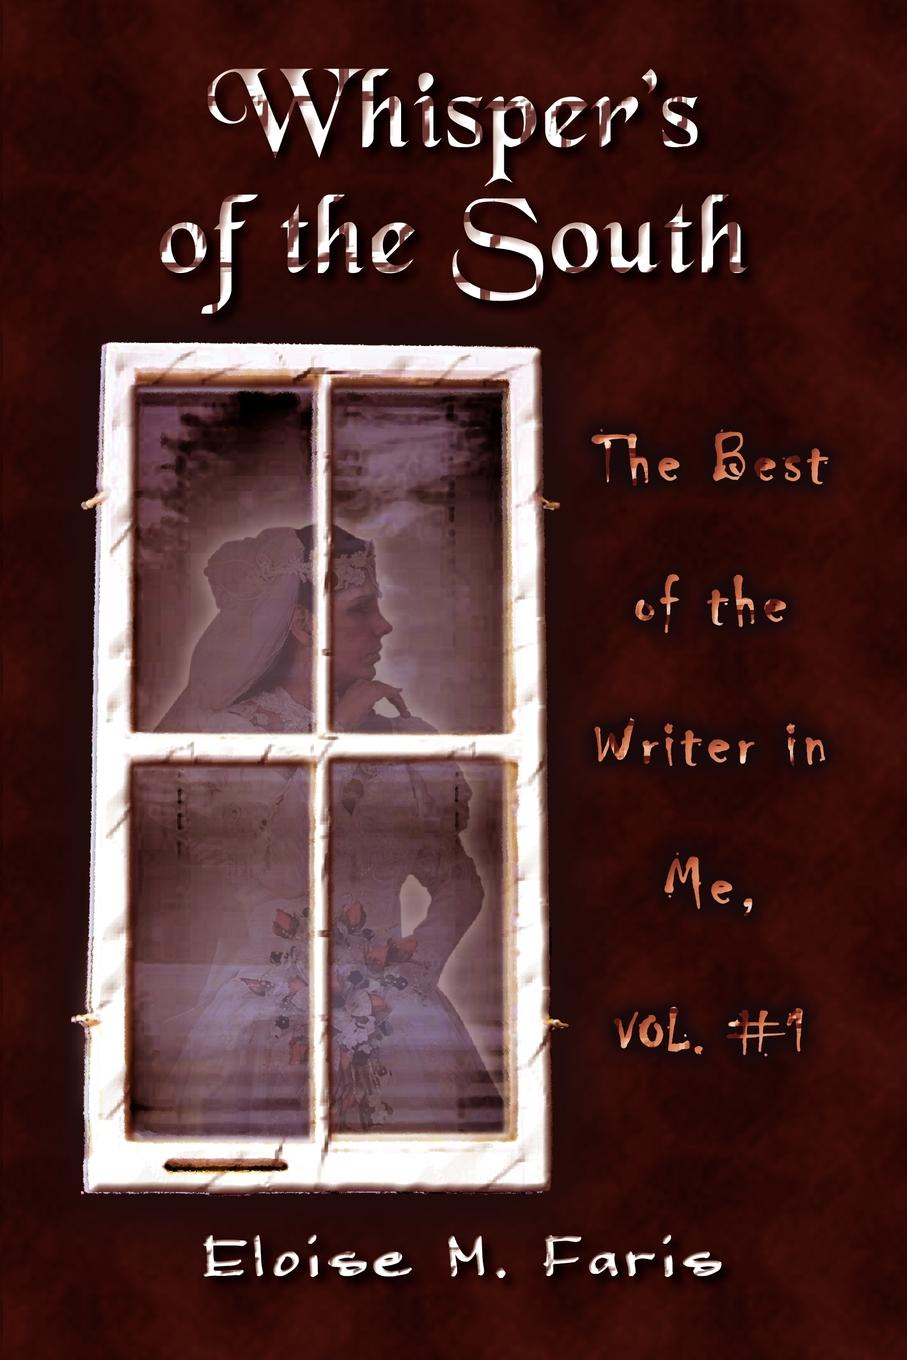 лучшая цена Eloise M. Faris Whispers of the South. The Best of the Writer in Me, Vol. #1